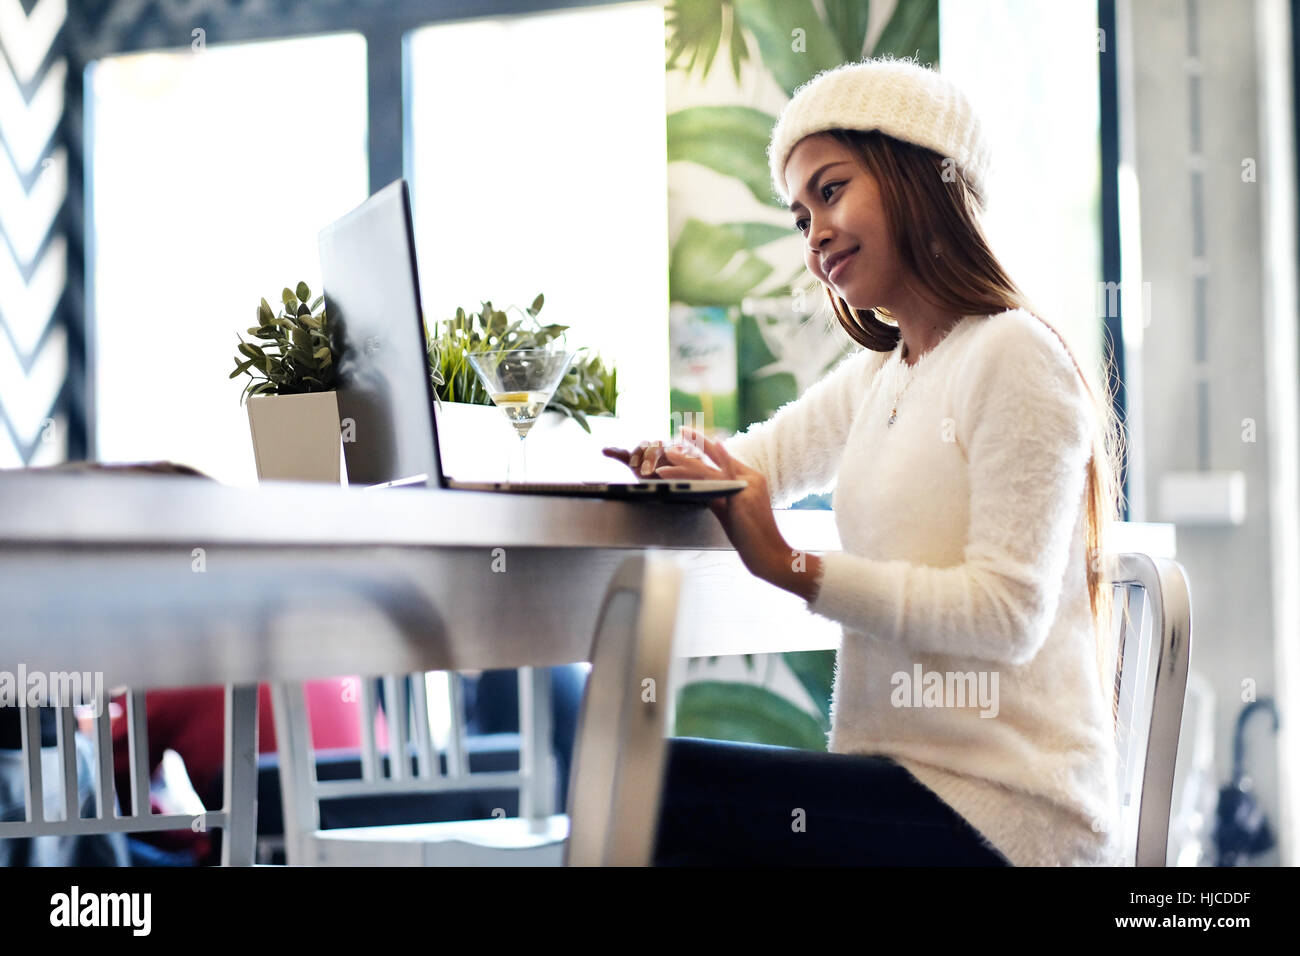 Beautiful girl networking in a café with laptop computer - Stock Image